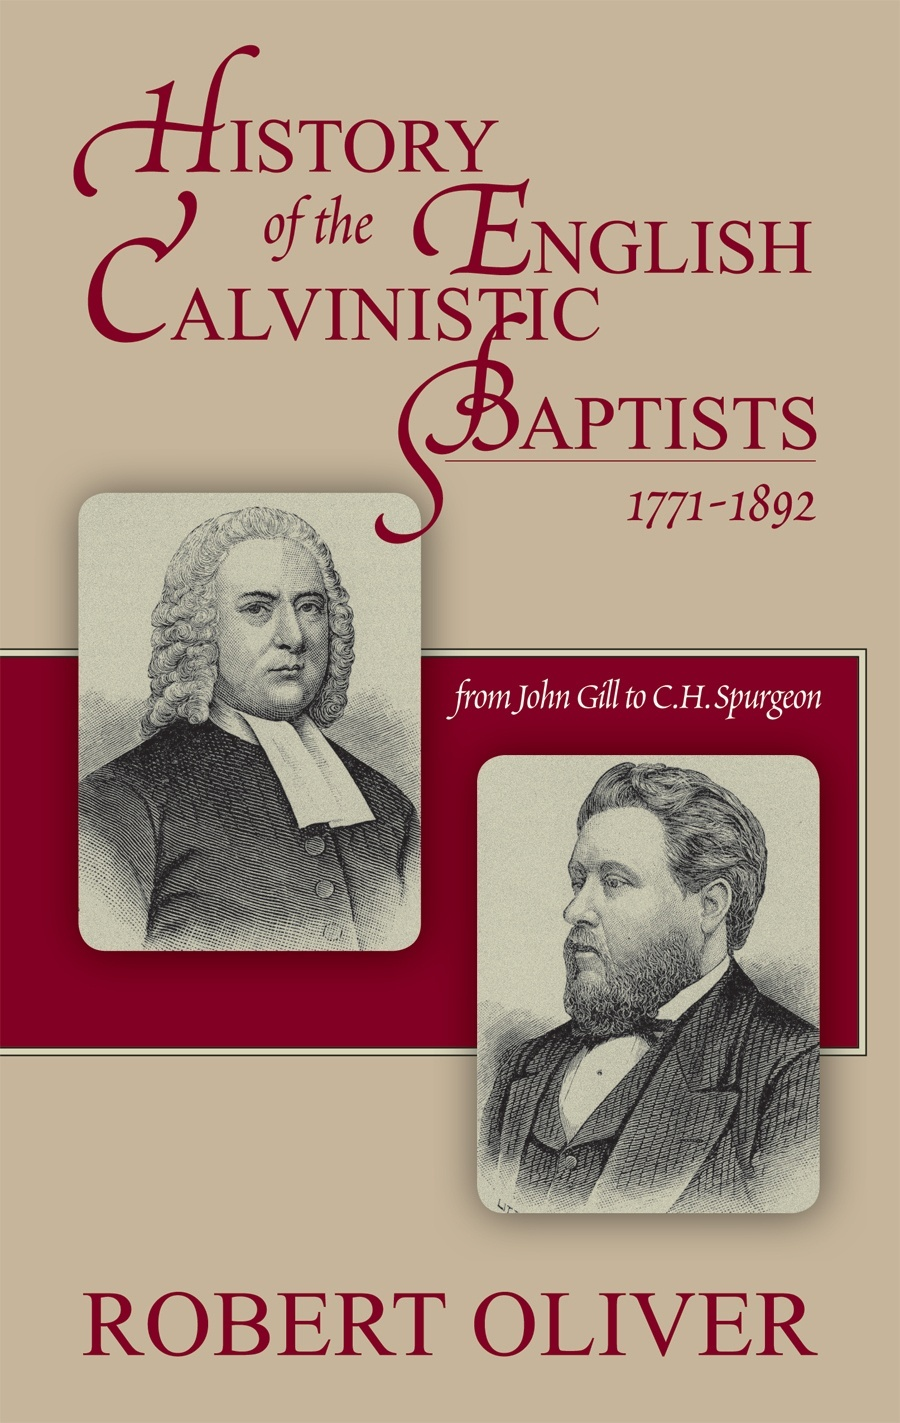 History of the English Calvinistic Baptists 1791-1892